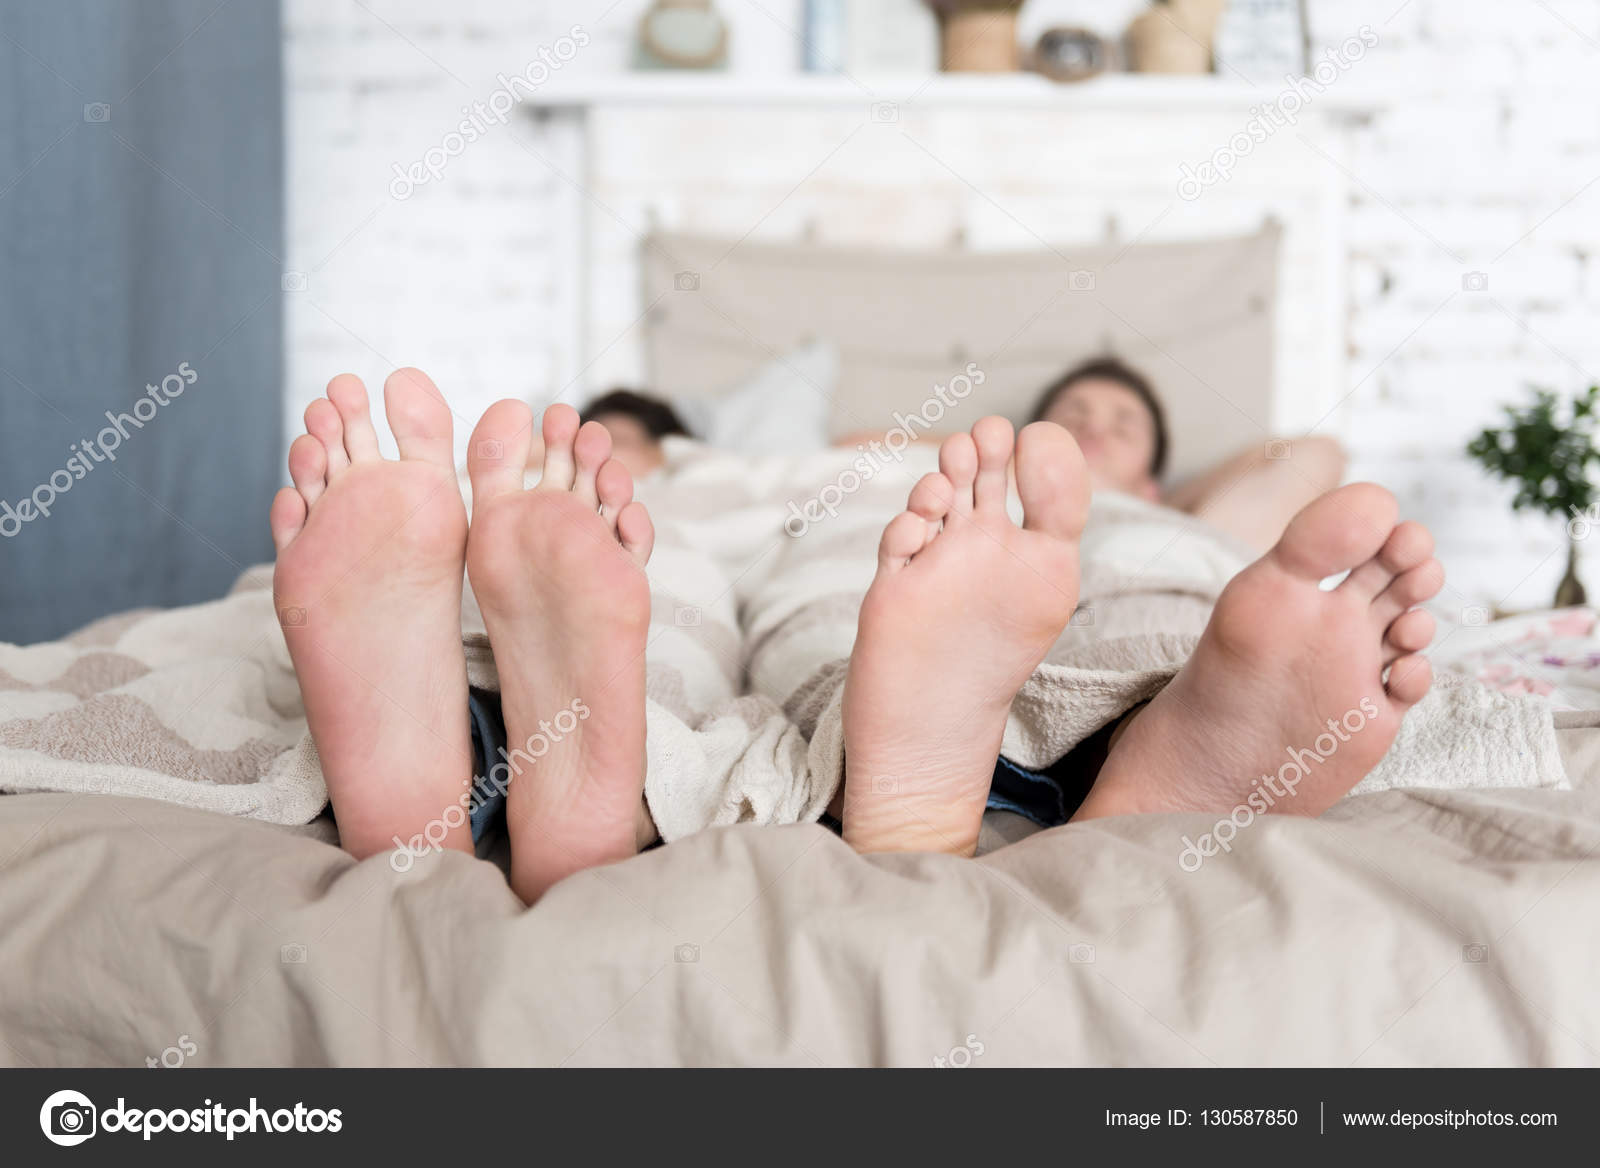 Gay A Letto.Gay Couple Feet Lying In Bed Stock Photo C Dmyrto Z 130587850